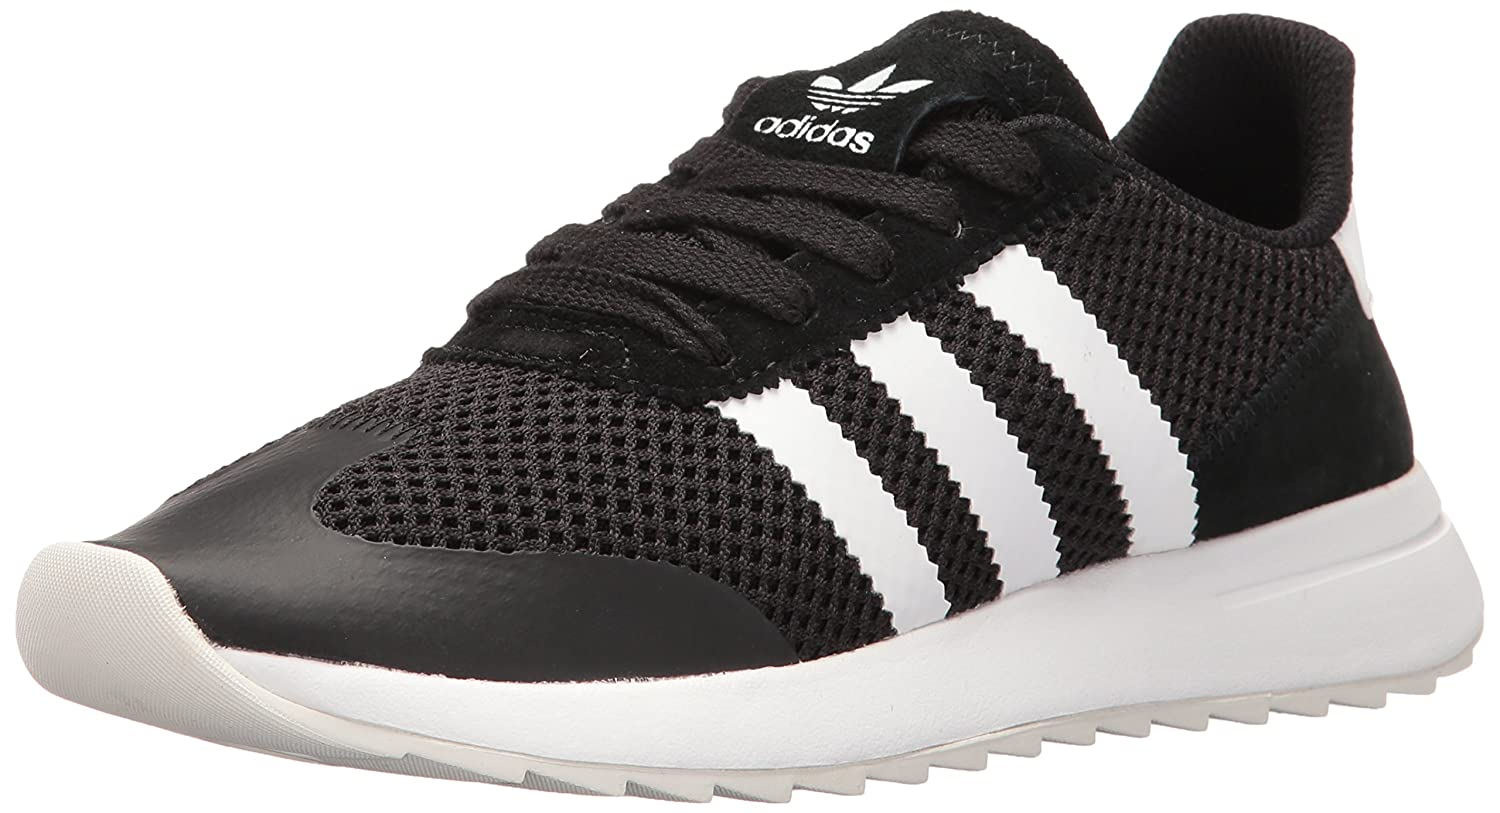 adidas Women's Flashback W Fashion Sneaker B01HNIQ7KI 7.5 B(M) US|Black/White/Black